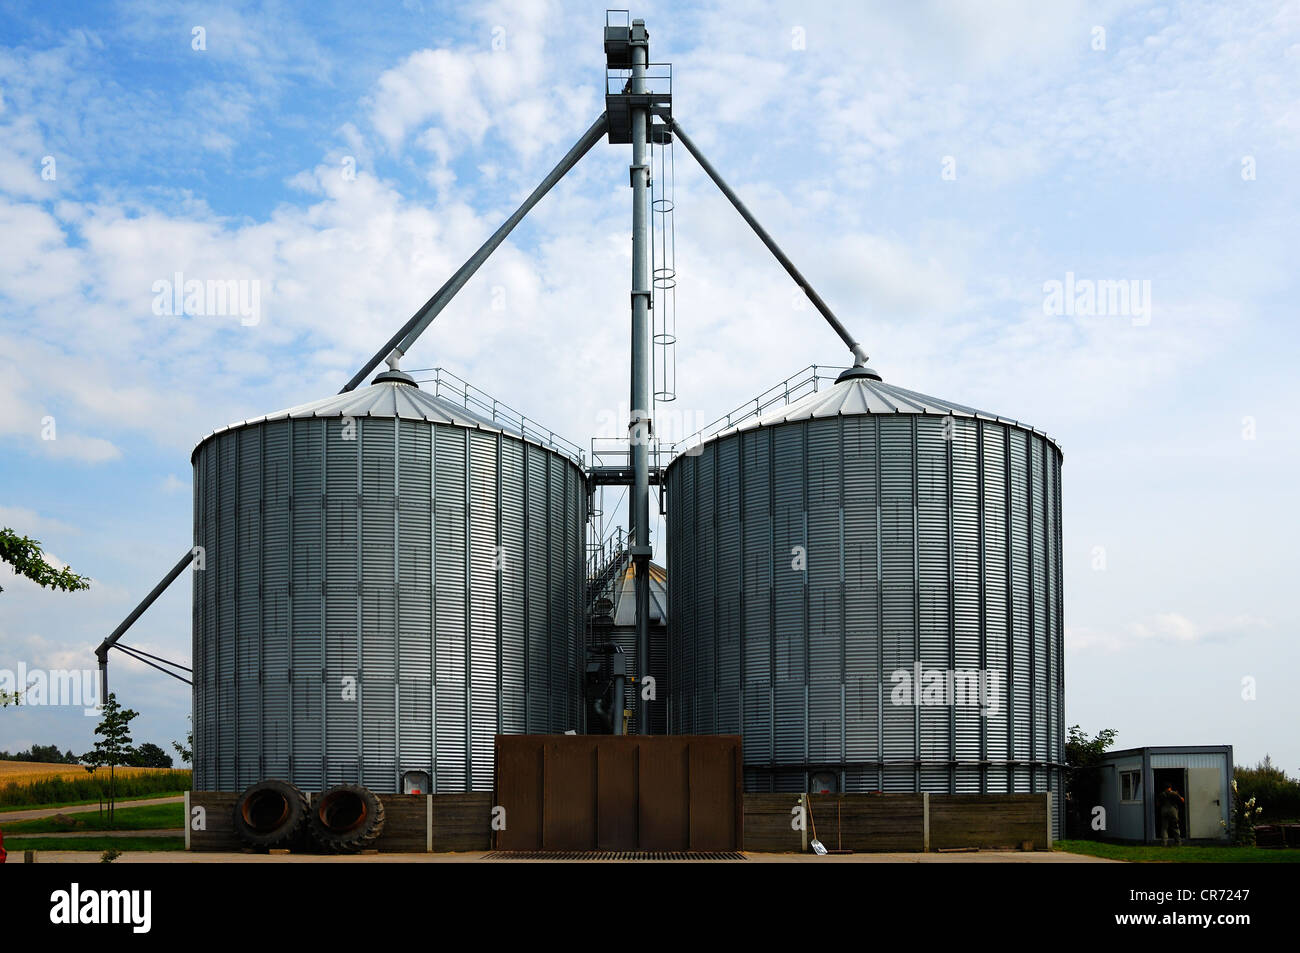 Two huge grain silos, capacity about 1000 tons, Mecklenburg-Western Pomerania, Germany, Europe - Stock Image